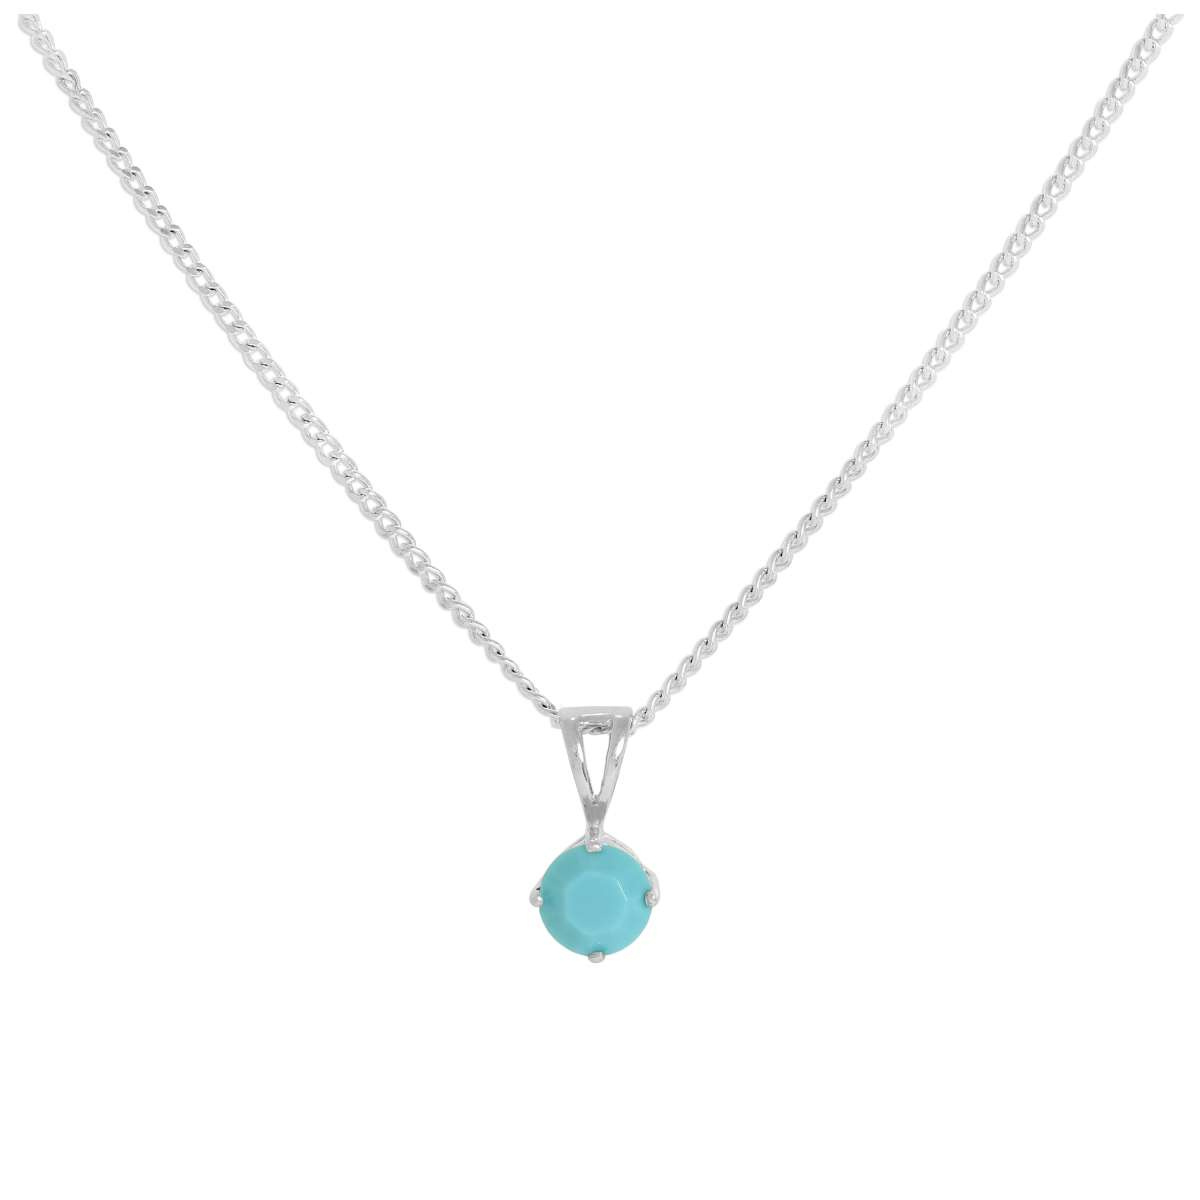 Sterling Silver & Turquoise Crystal Made With Swarovski Elements December Birthstone Pendant Necklace 16 – 24 Inches | Jewellerybox.co (View 11 of 25)